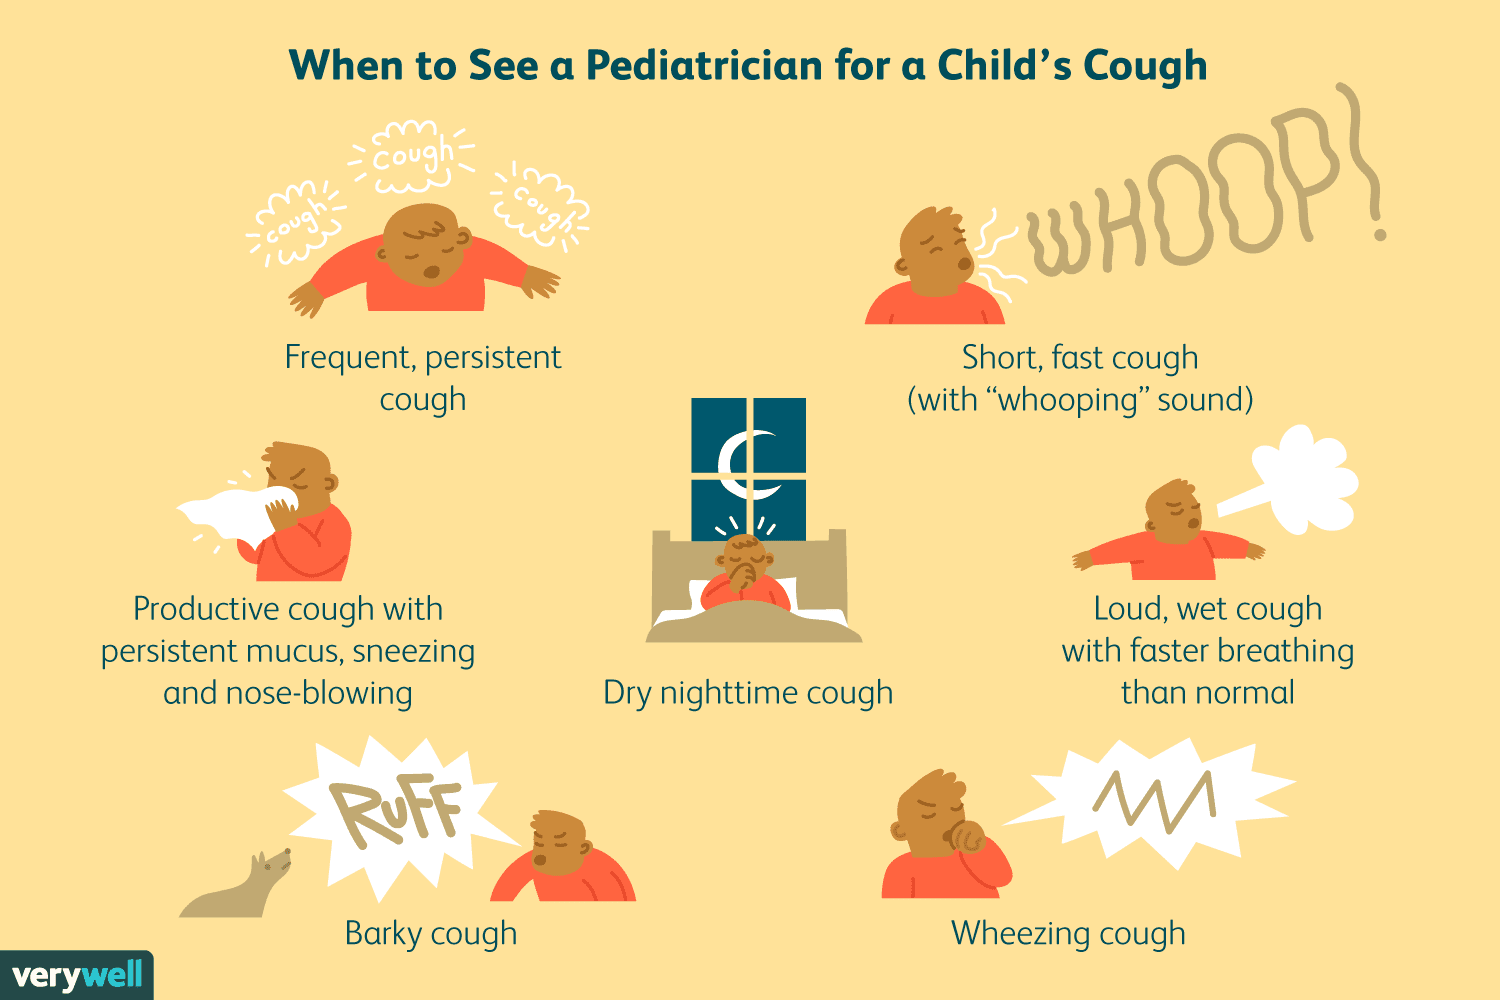 When to See a Pediatrician for a Child's Cough